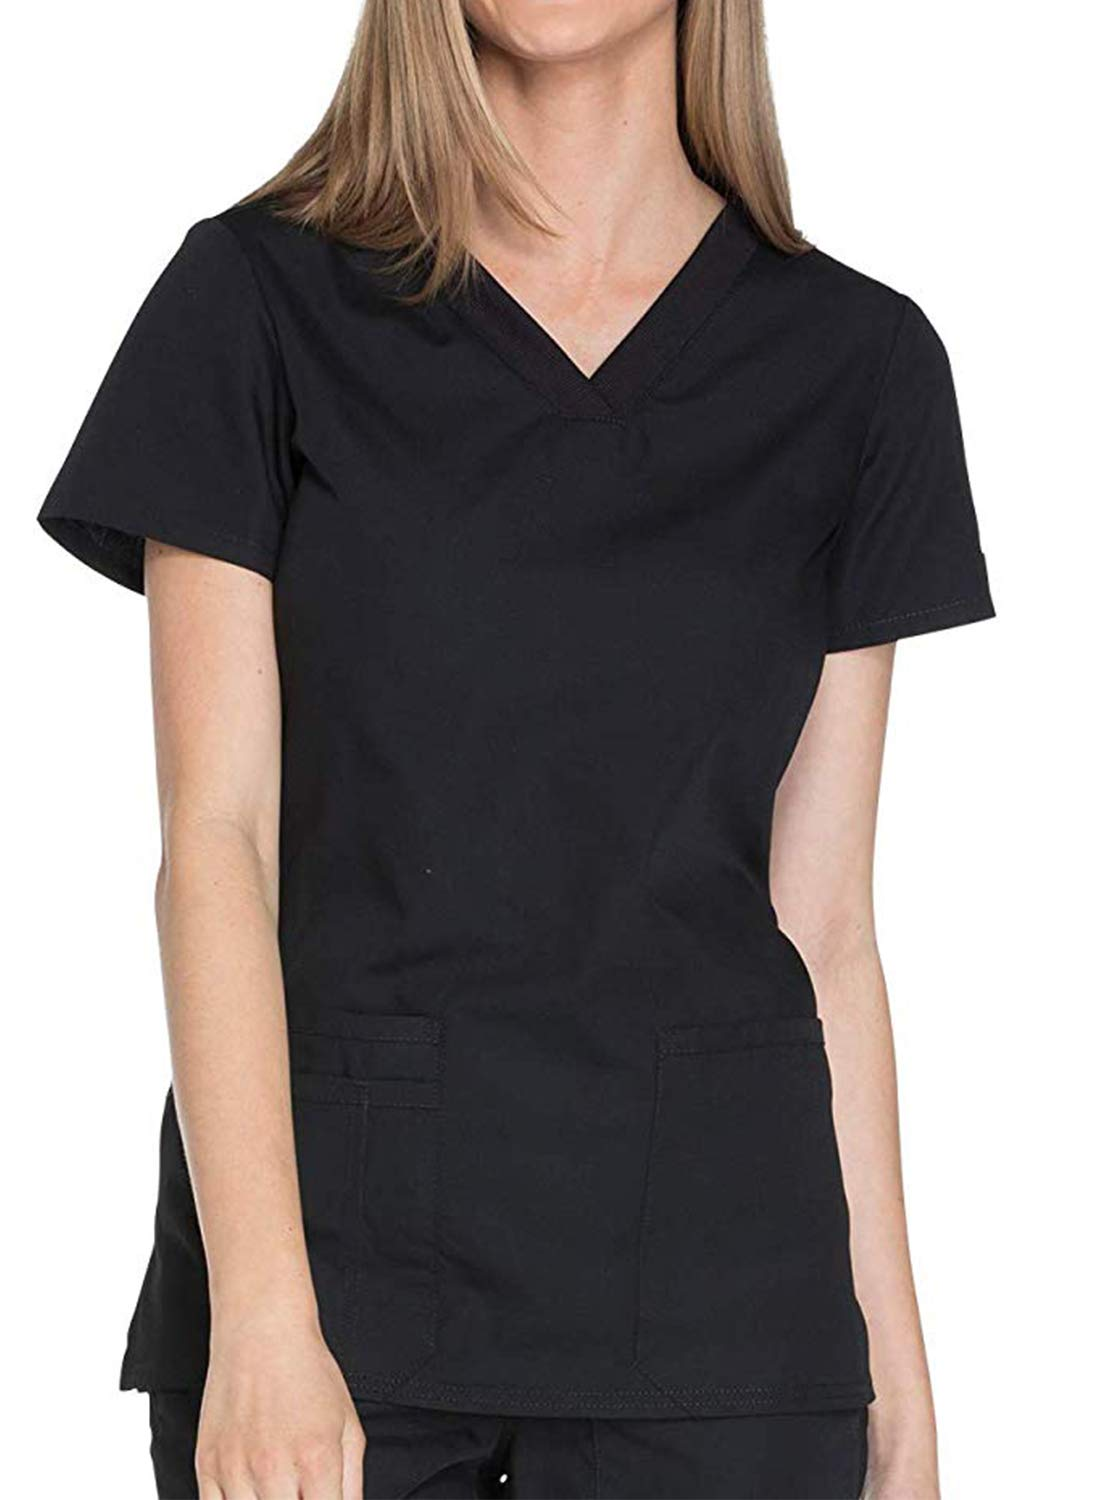 Taylover Women's Scrubs Top Nursing Scrubs Top Women Scrubs top Medical Scrub Top